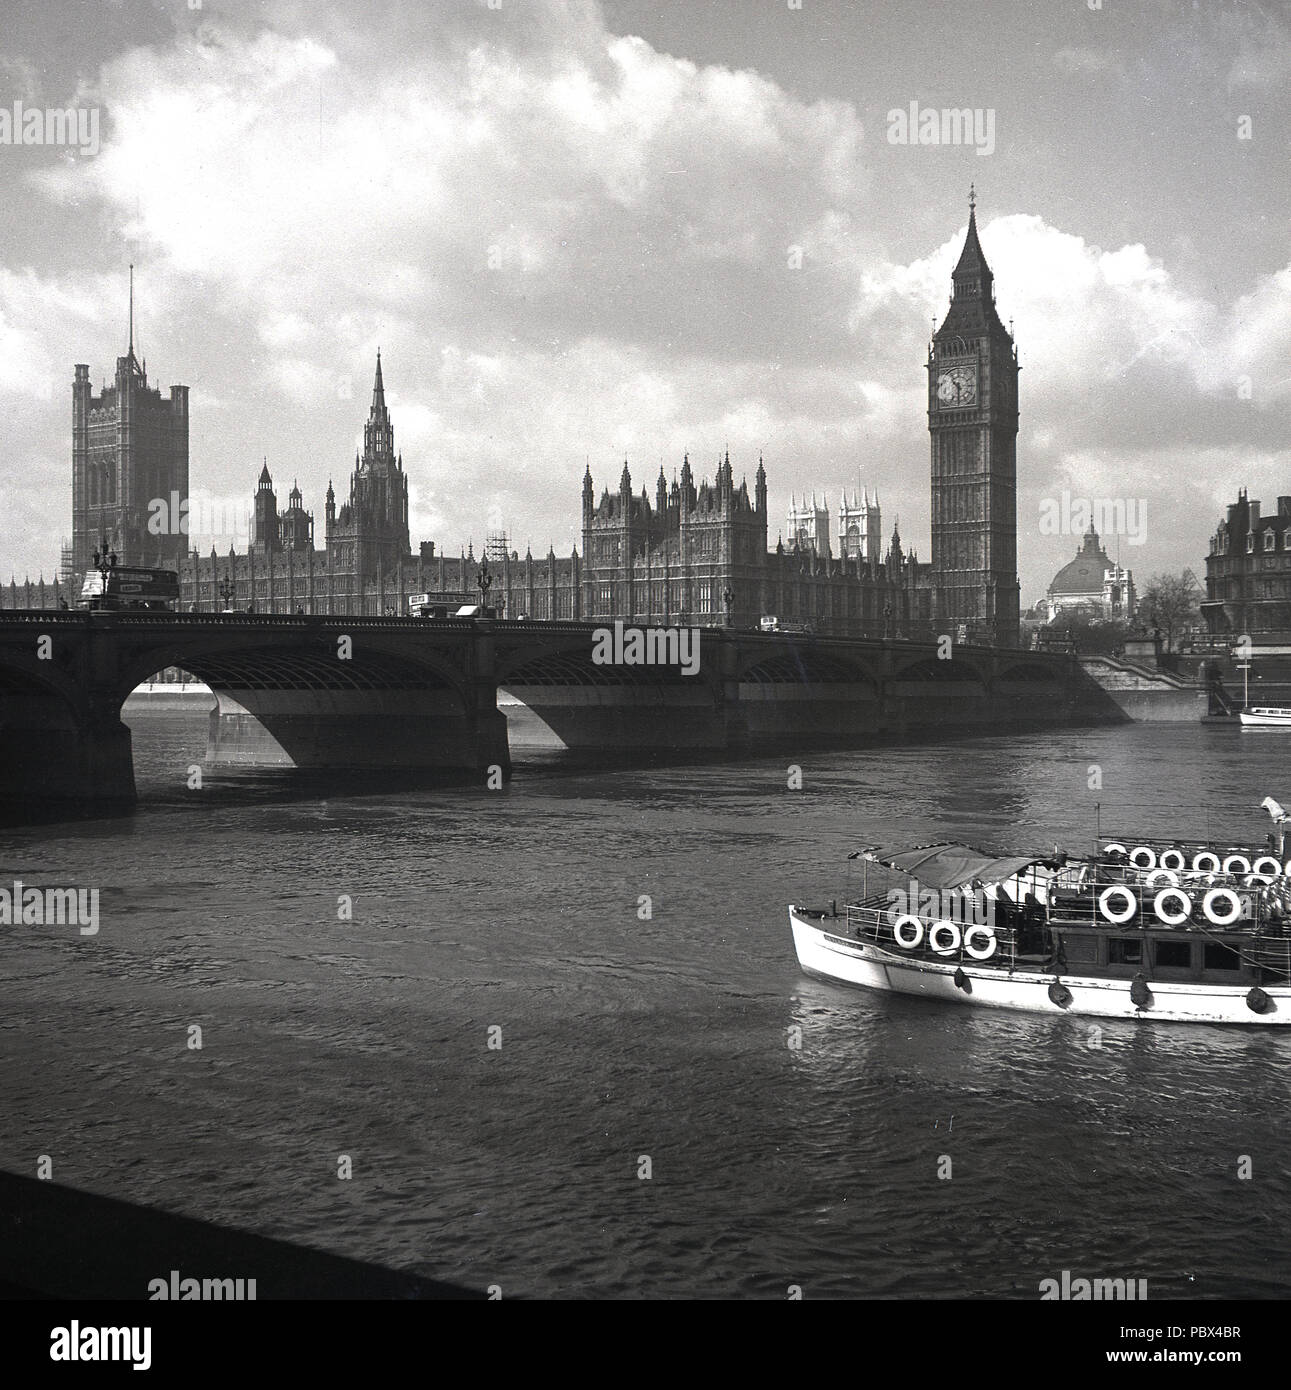 1950s, view of Westminster Bridge and the Palace of Westminster, more commonly known as the Houses of Parliament, London, England, UK. Stock Photo